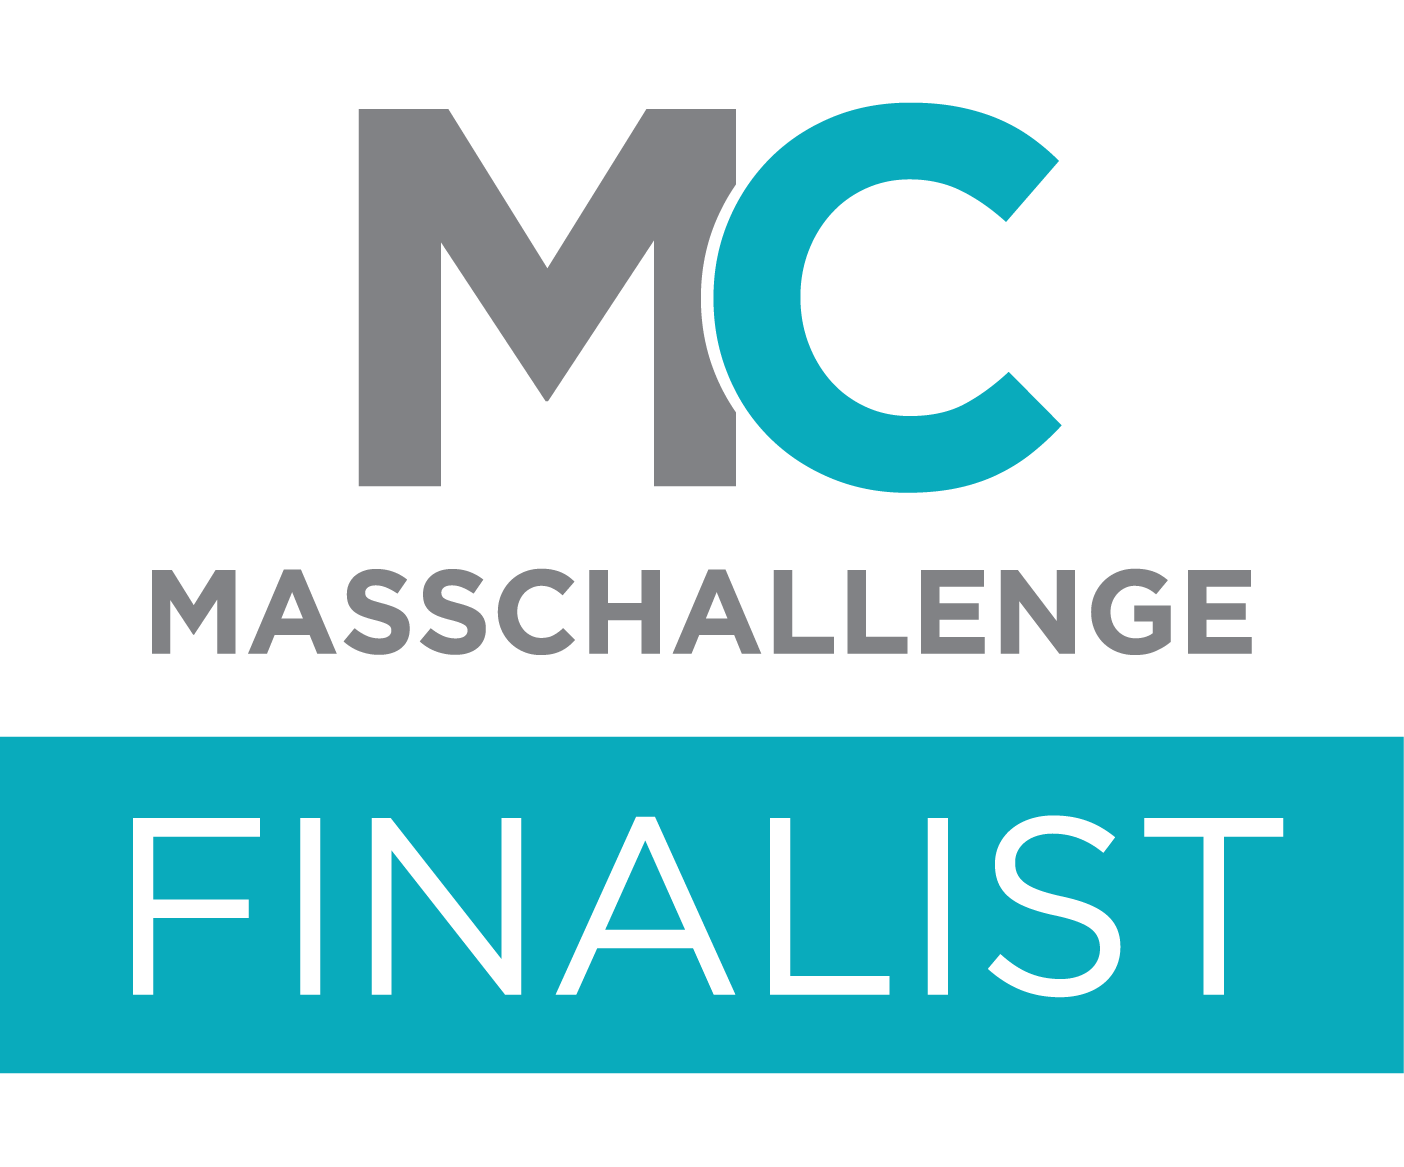 TERAPET one of the finalists of Masschallenge Switzerland 2019